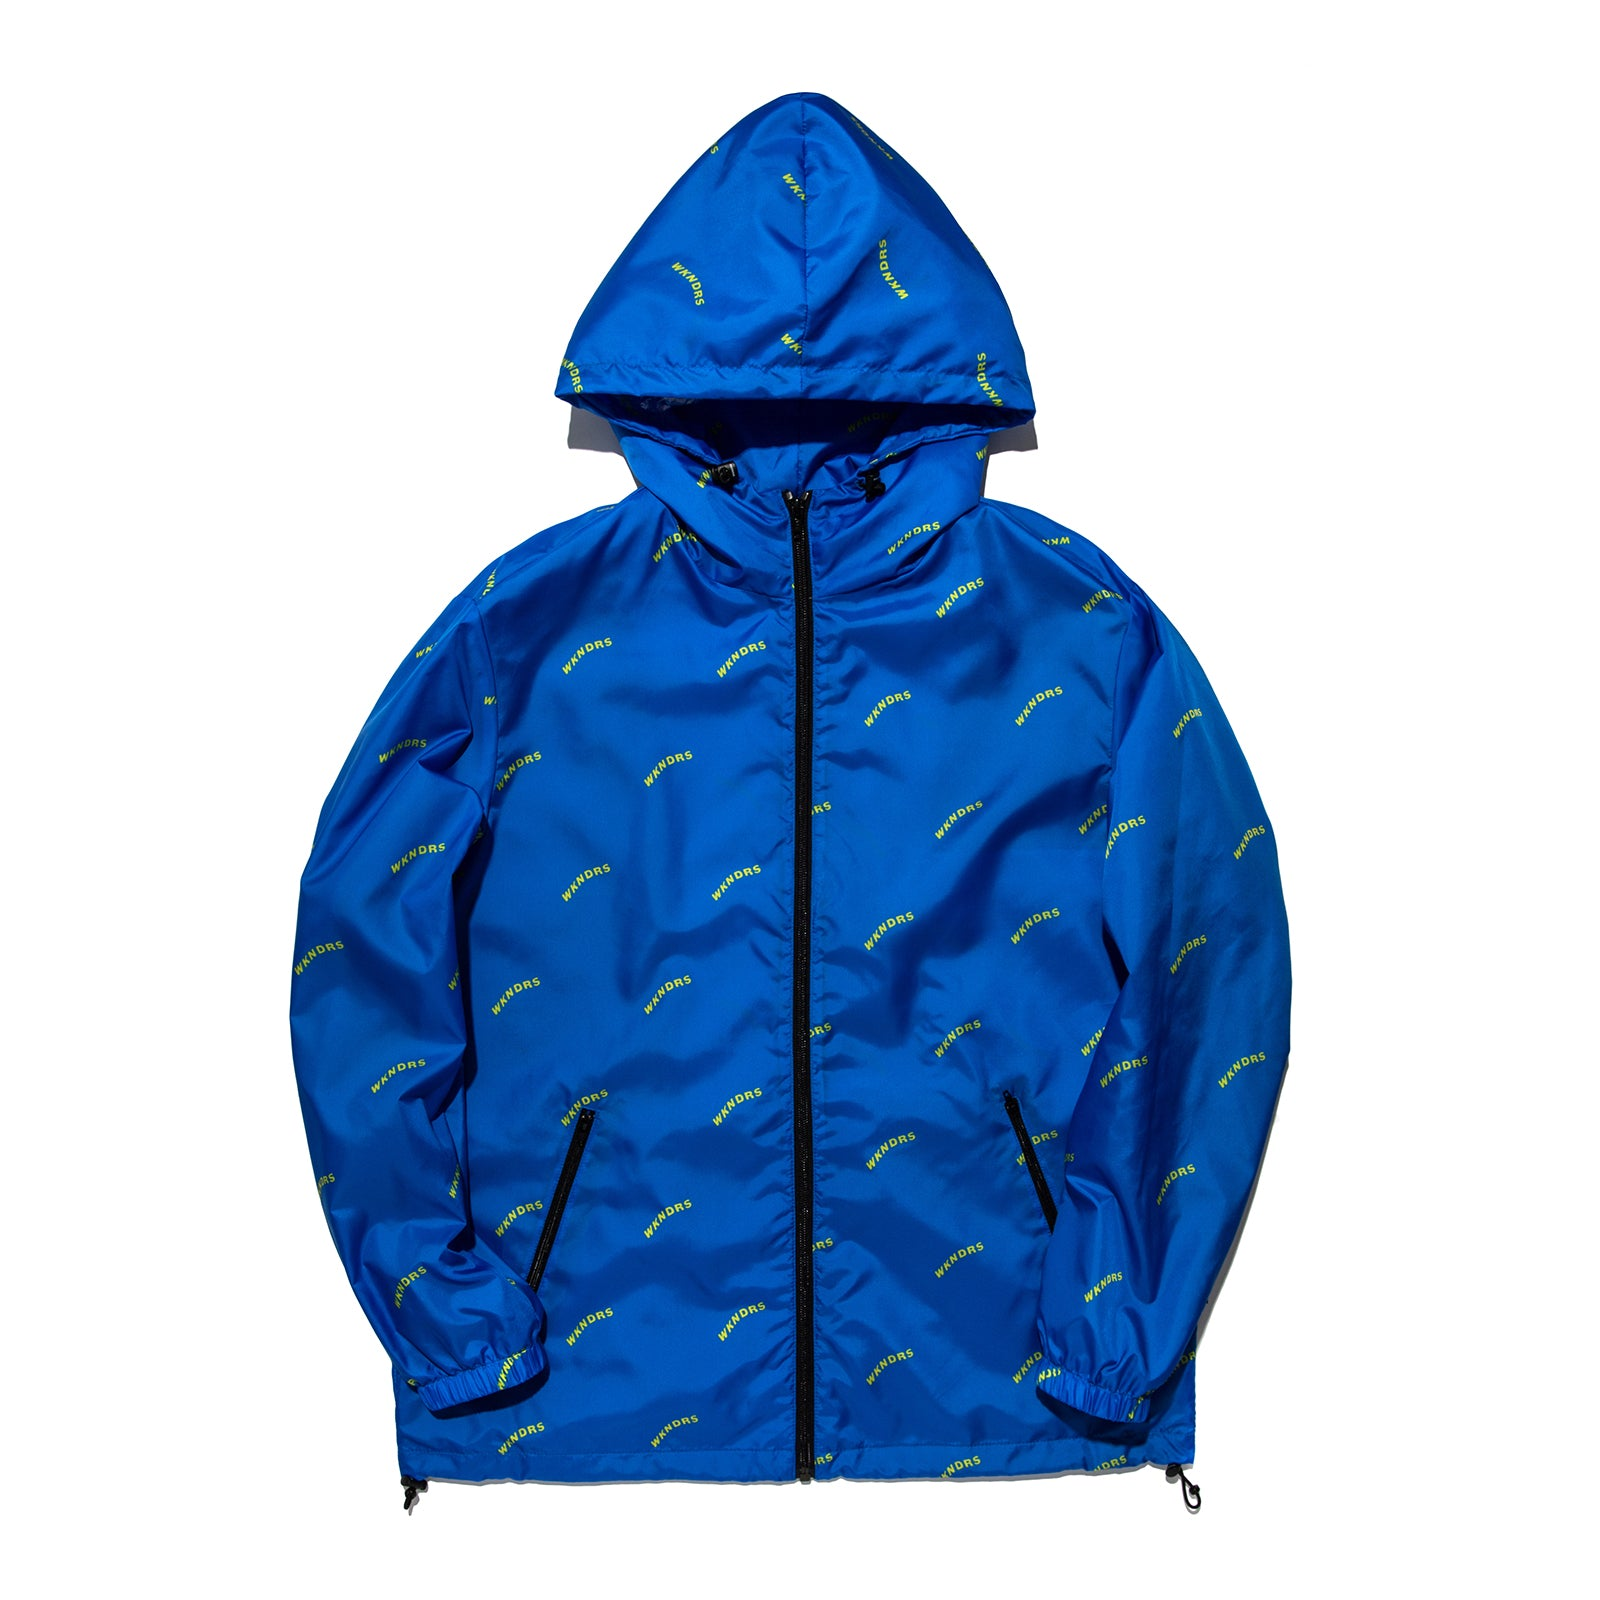 WAVY LOGO HOODED ZIP-UP (BLUE)